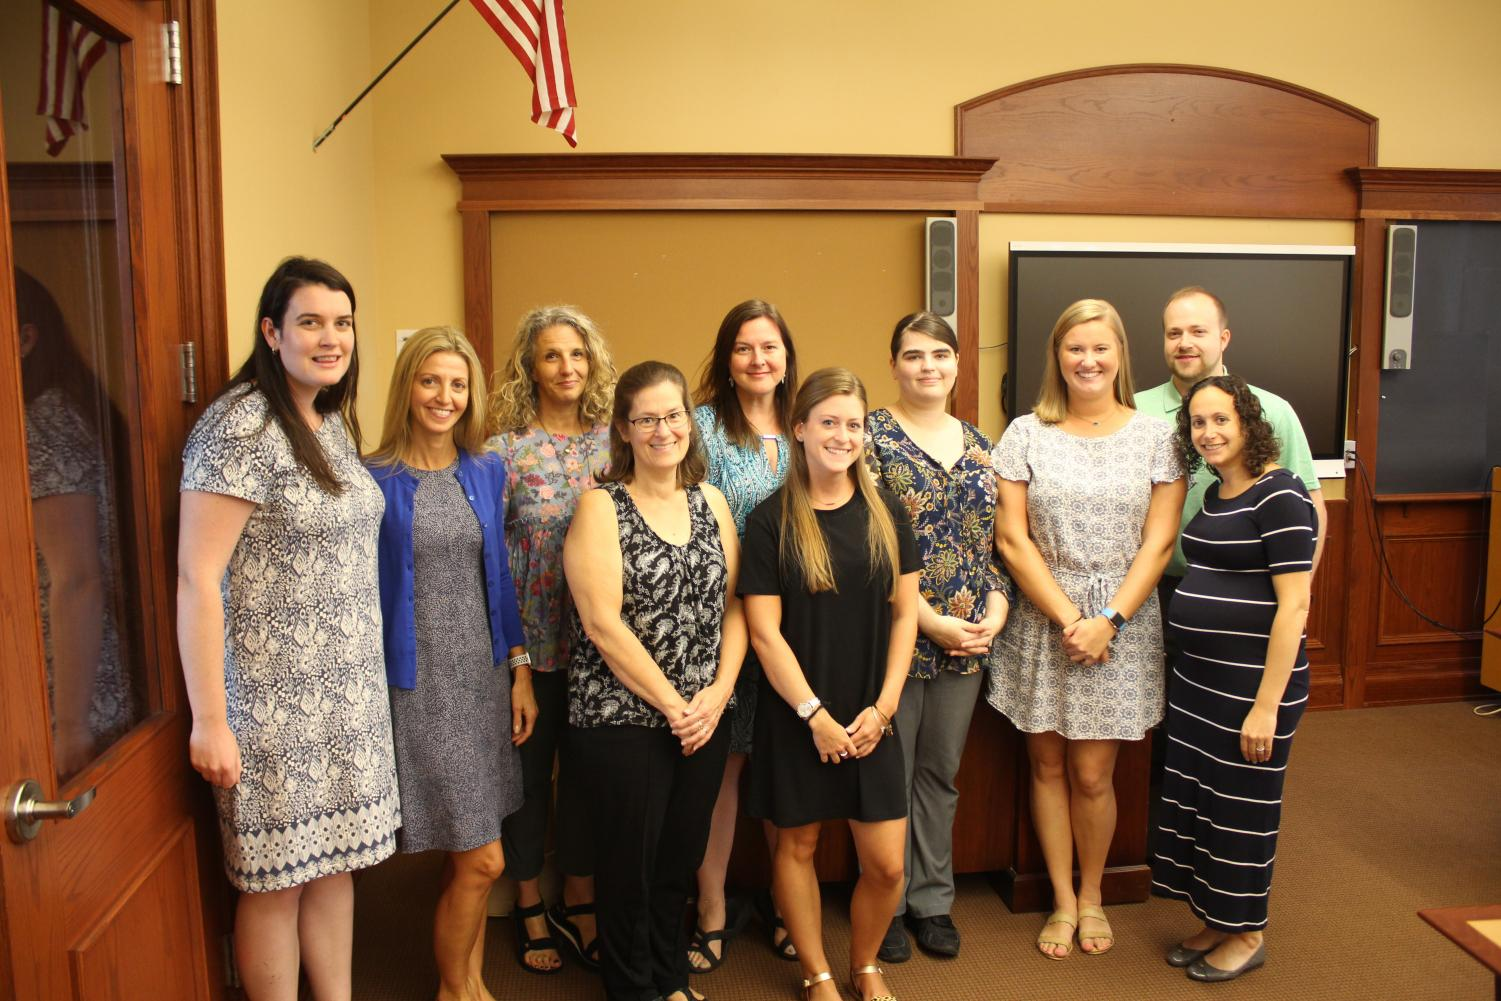 New teachers left to right: Mary Brennan (Pelham Middle School math/technology), Rosemarie Cipollone (district-wide ENL), Lori Amer (PMS art), Vicky School Mendez (Colonial Kindergarten), Dana Diersen Buehrer (Prospect Hill first grade), Lauren Vaas (Hutchinson Kindergarten), Elizabeth Klippert (Pelham Memorial High School math), Sennett Cooke (Siwanoy first grade), Andrew Dolgon (elementary band) and Ilana Sitkoff (Colonial psychologist). Photos were taken during the annual two-day orientation for new staff held Aug. 28-29.